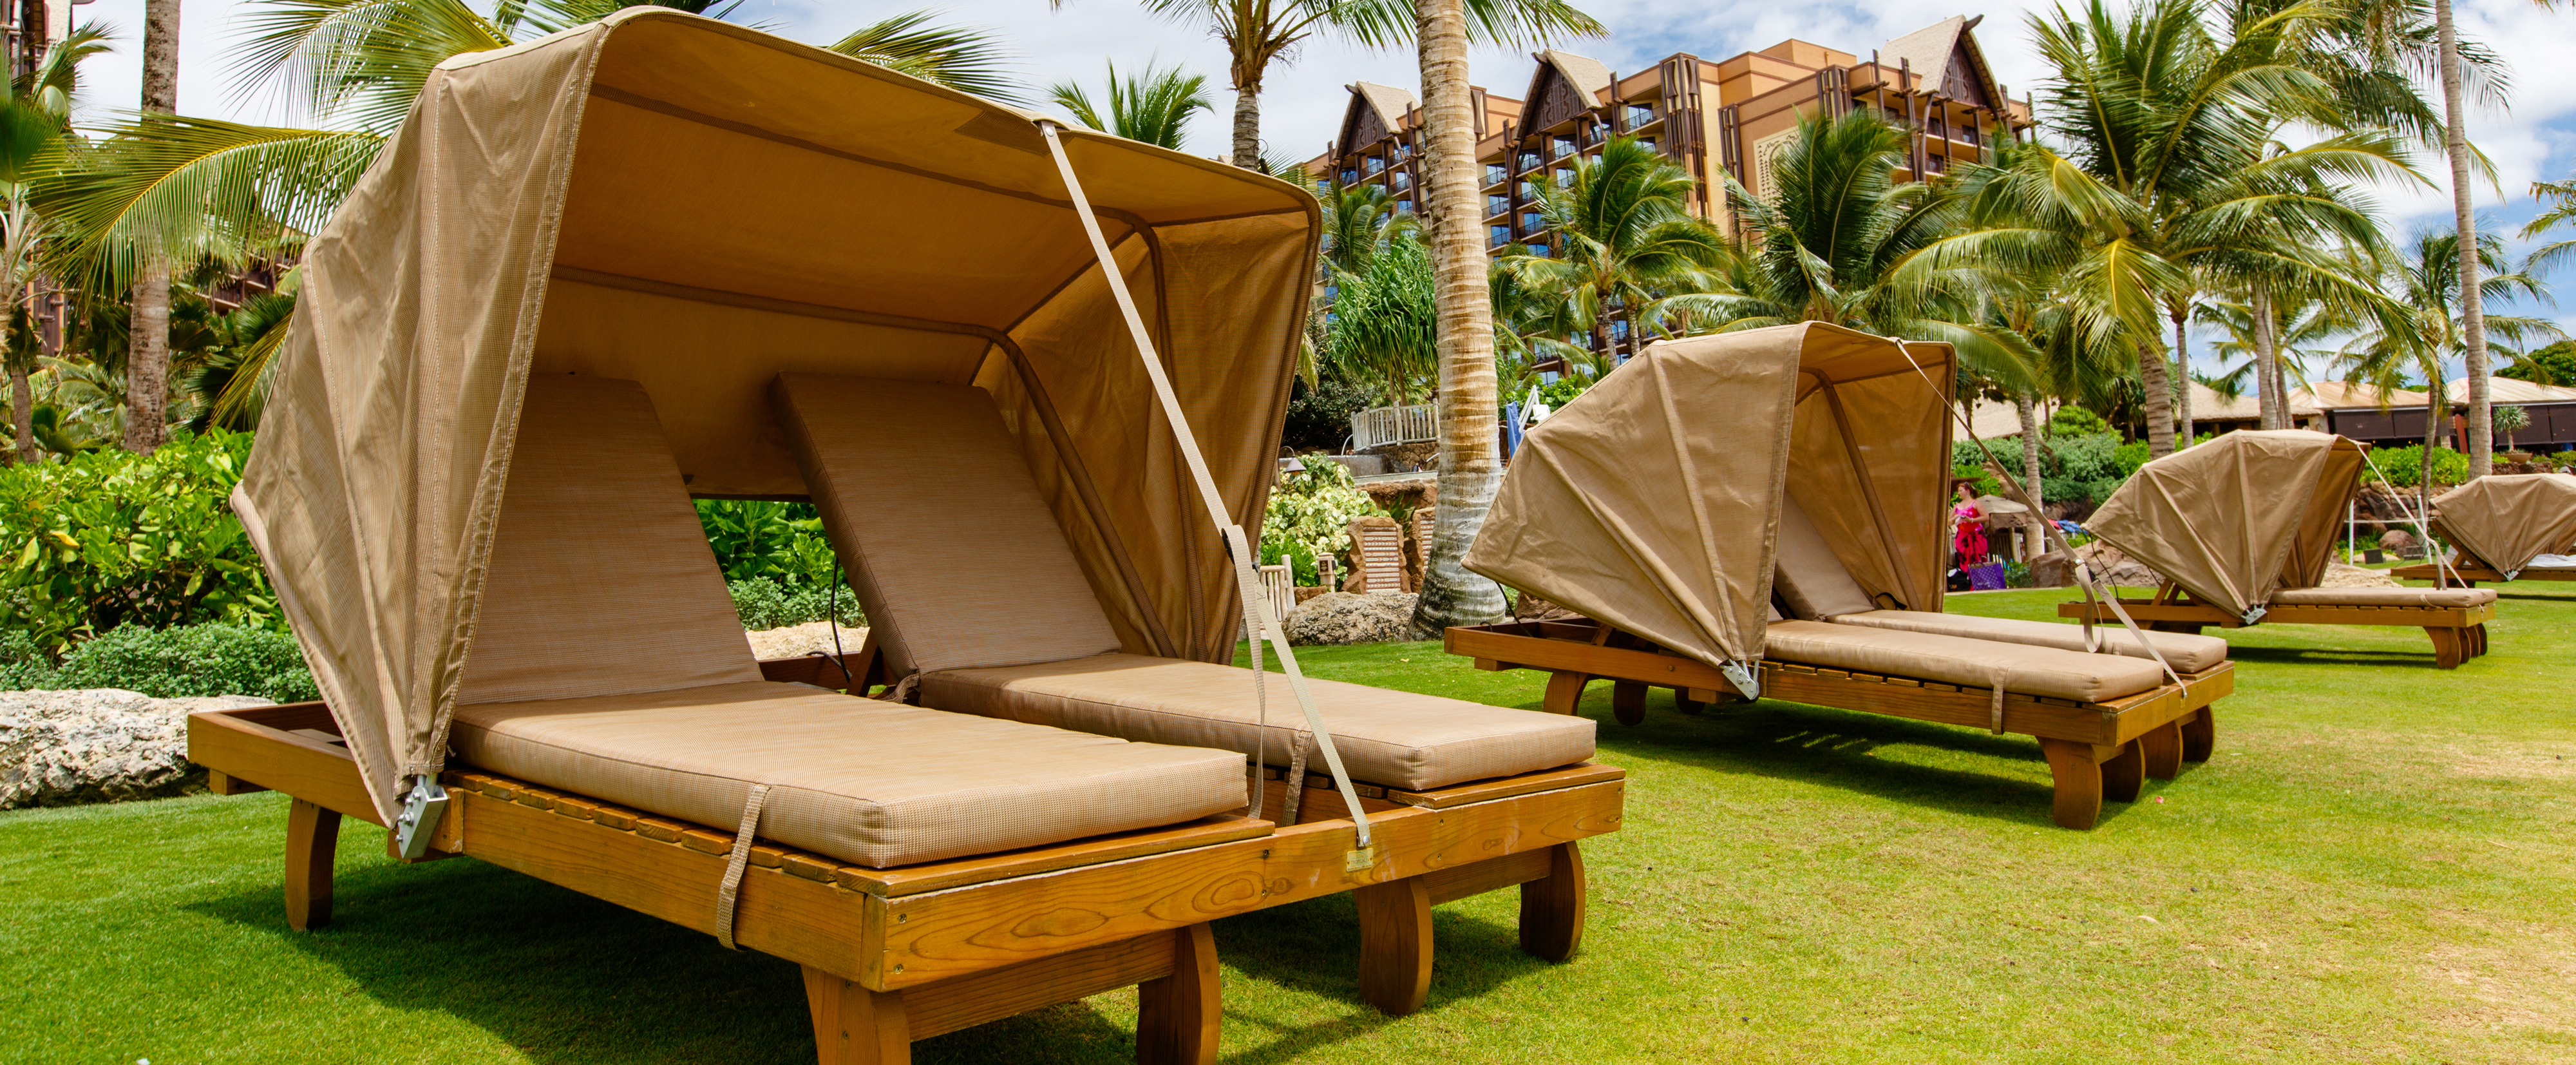 Four 2-person Casabella loungers with awnings on a lawn bordered by palm trees